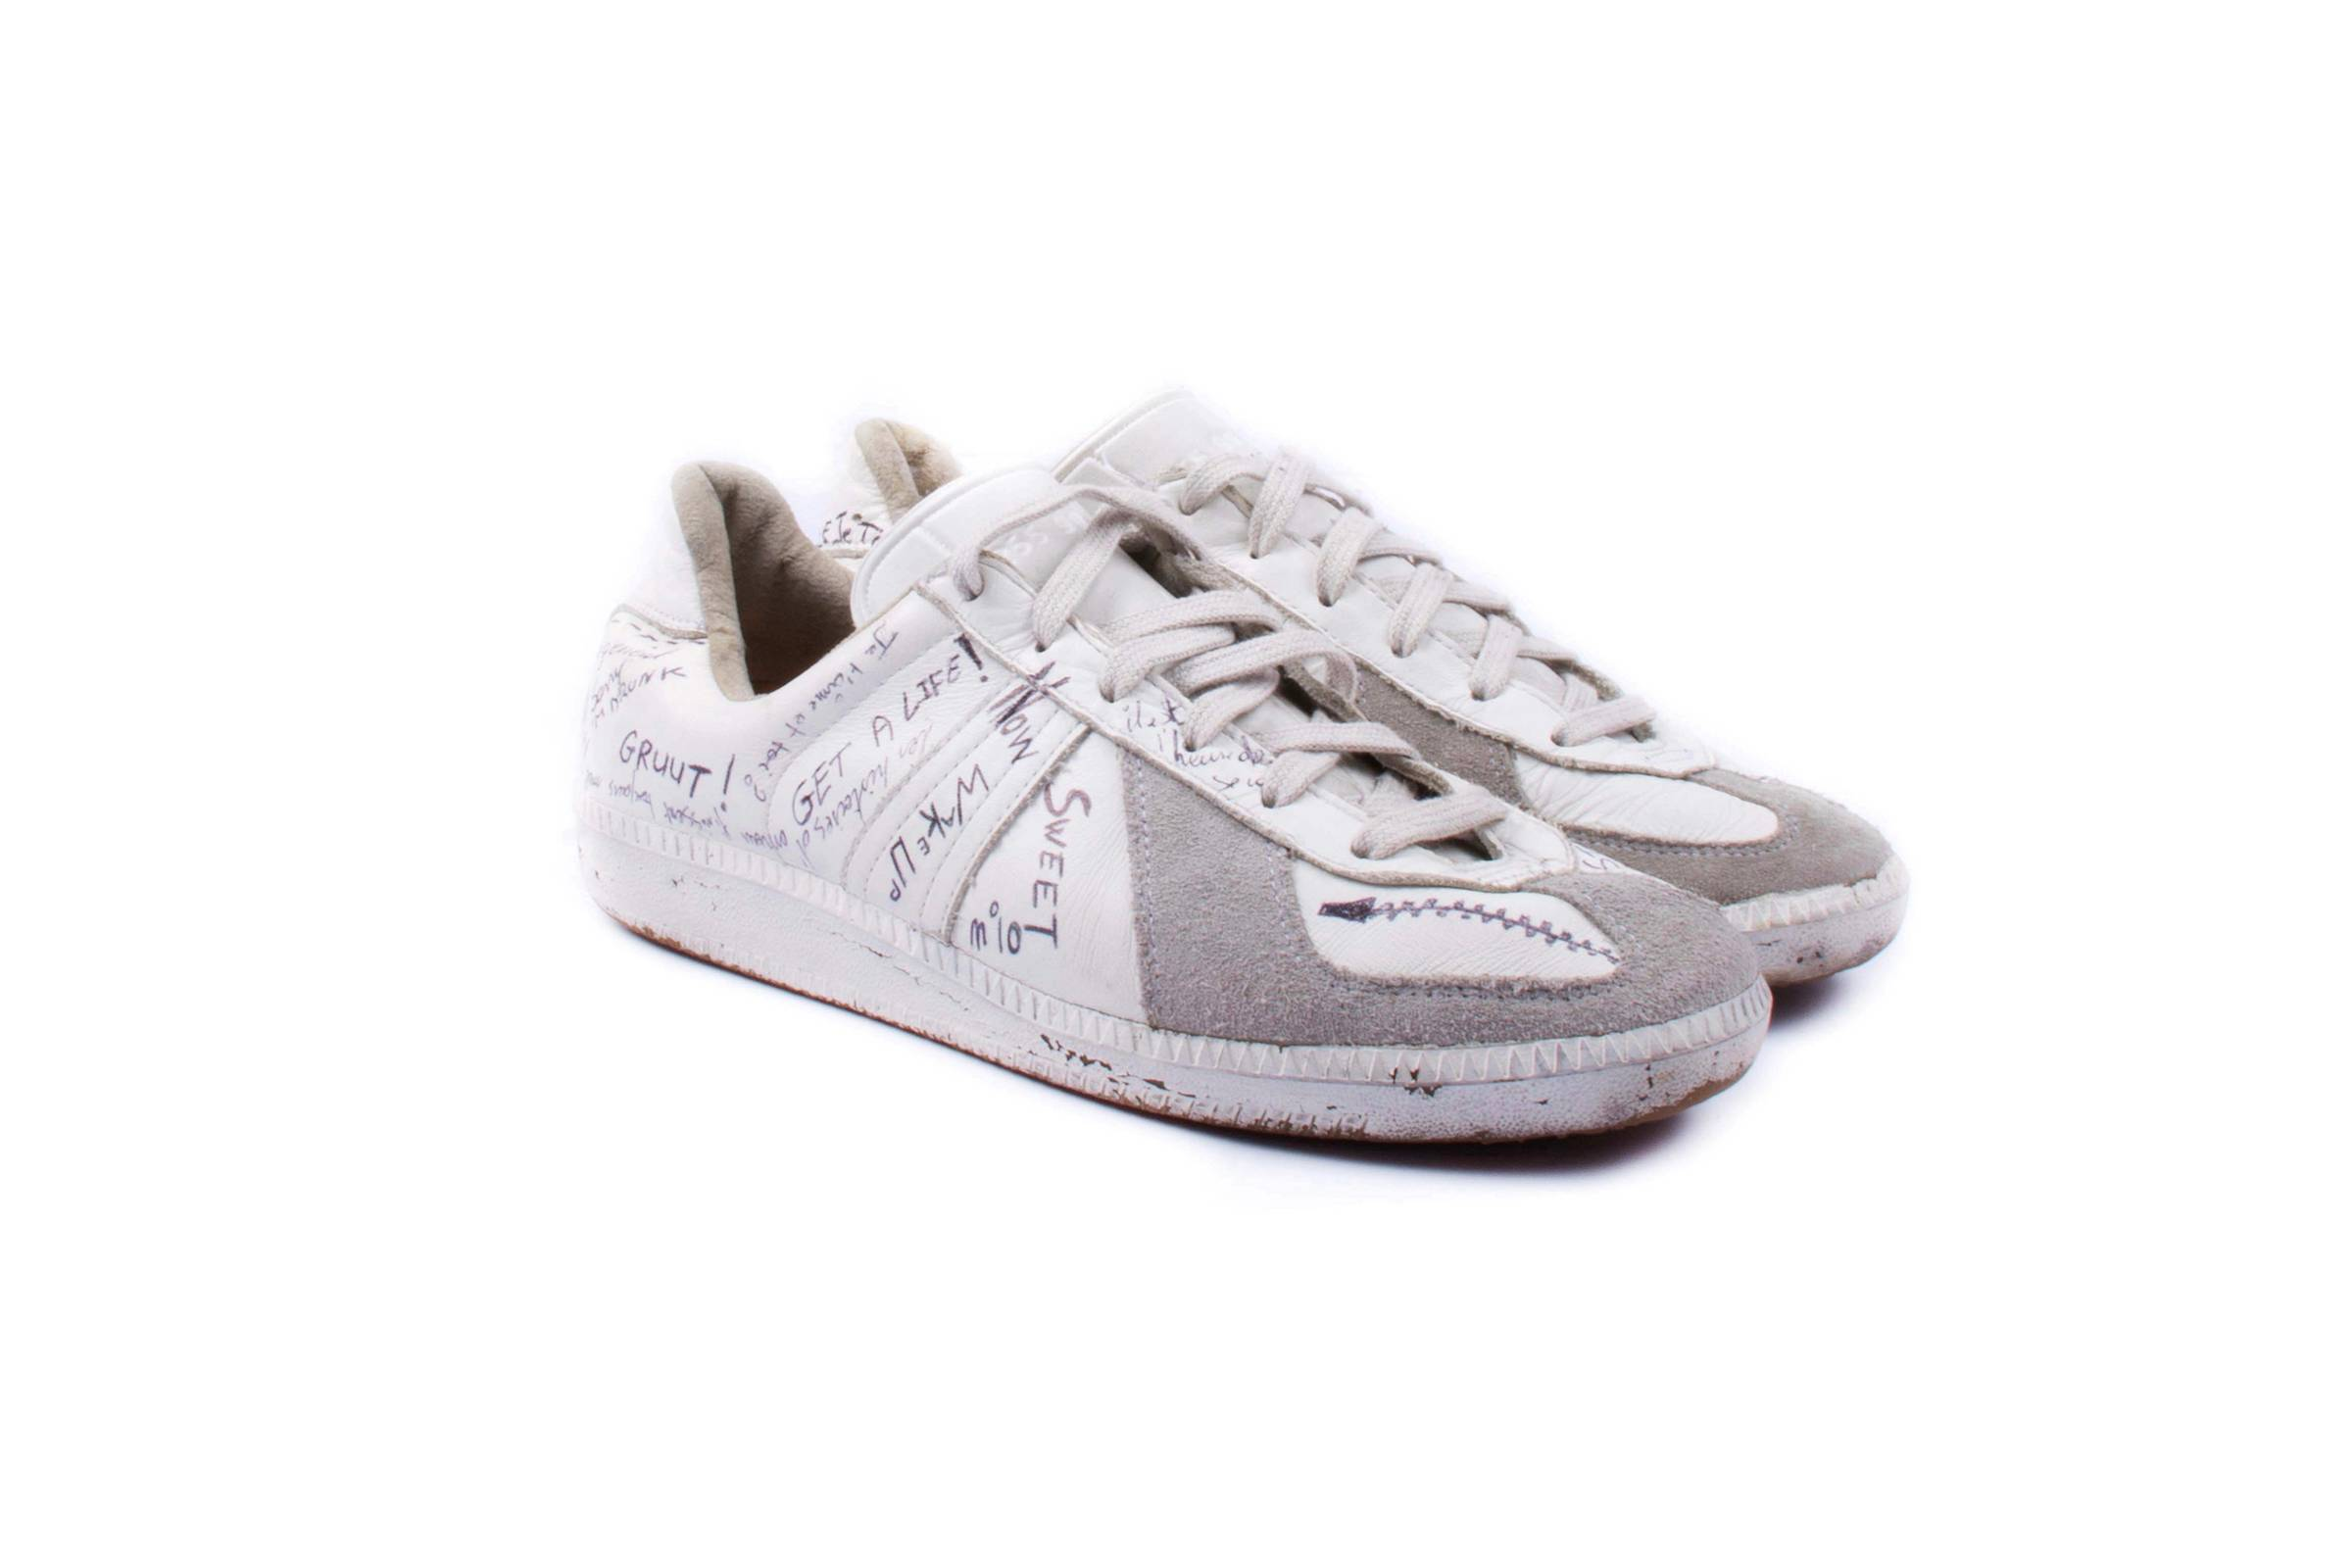 "Maison Margiela ""Graffiti"" German Army Trainers"